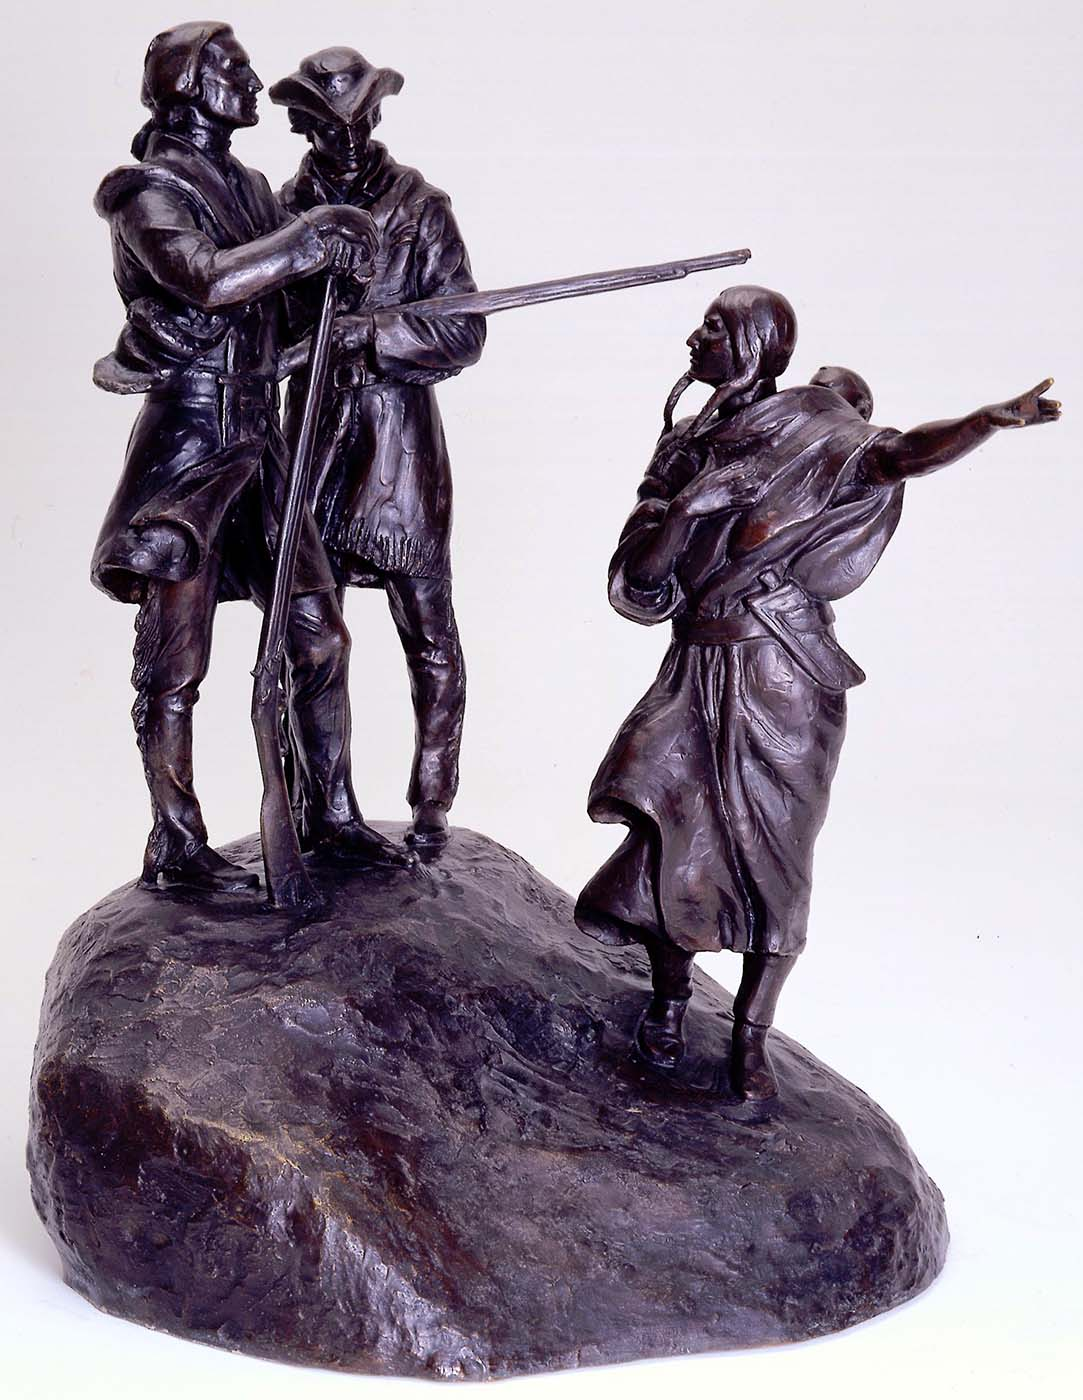 """Henry Lion (1900-1966). """"Lewis and Clark and Sacajawea,"""" ca. 1963. Bronze, 35.25 inches. Gift of Charles S. Jones. 27.64"""